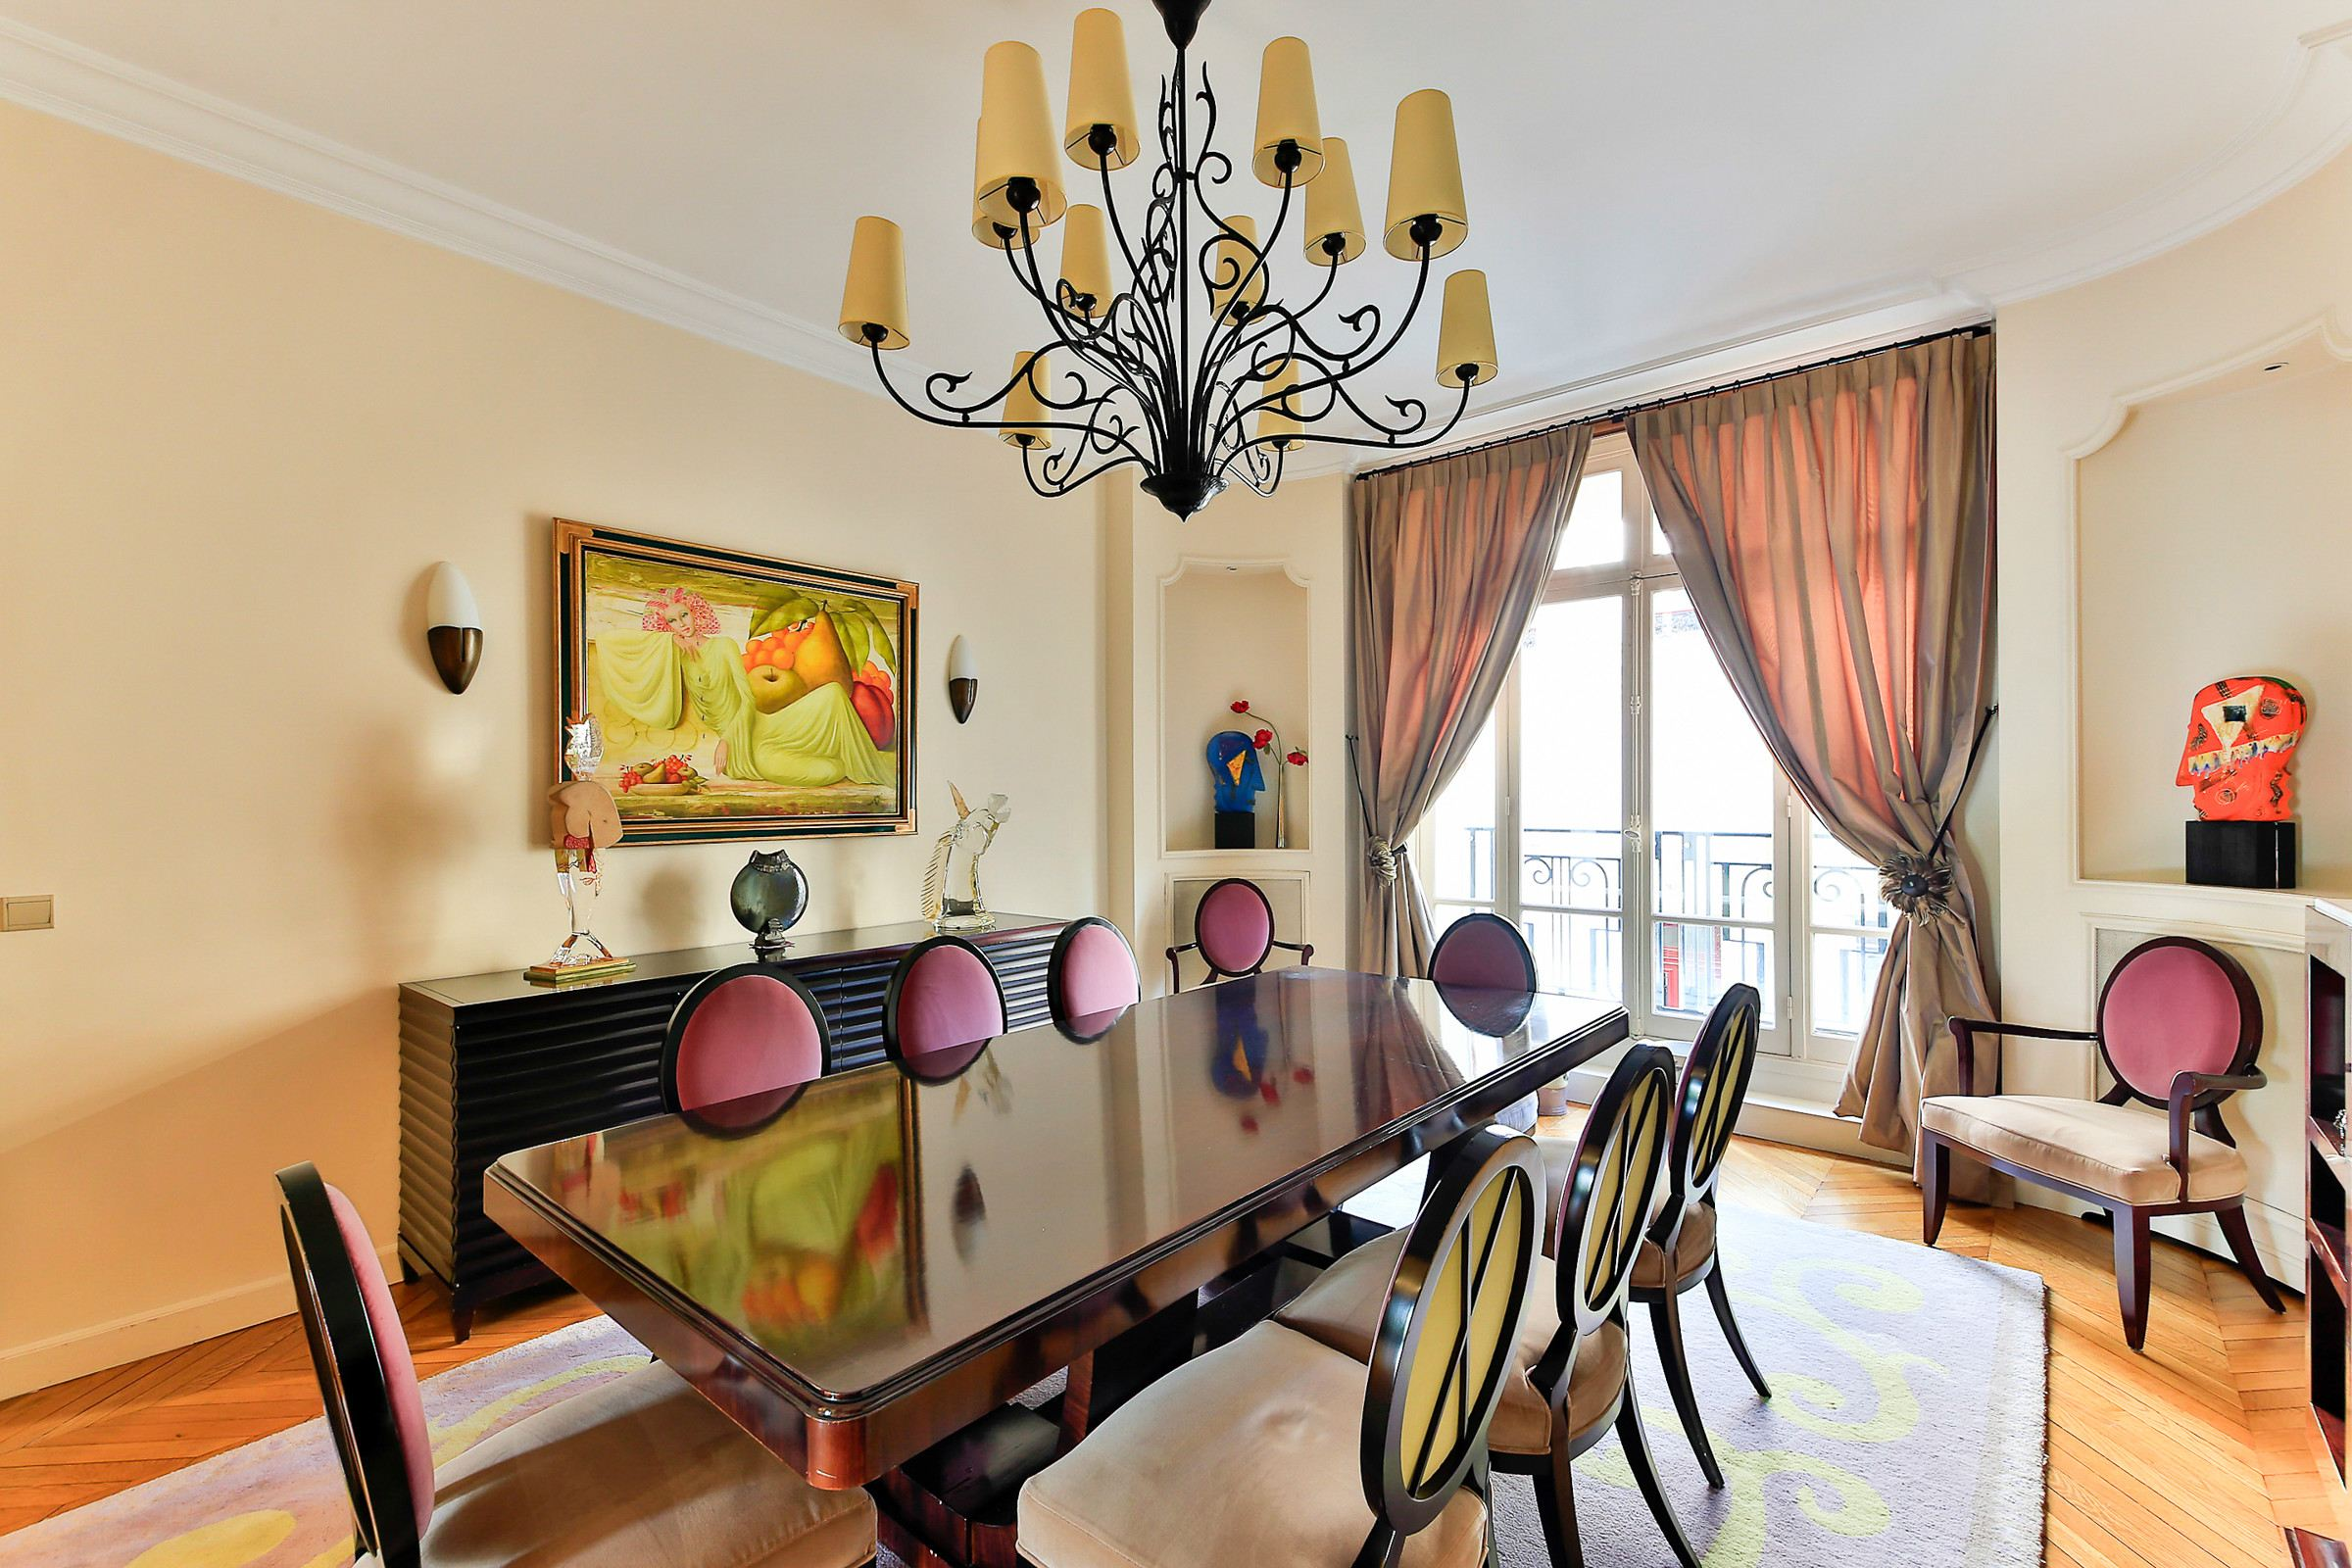 Property For Sale at Neuilly - Maurice Barrès - A 315 sq.m apartment - Bois de Boulogne view